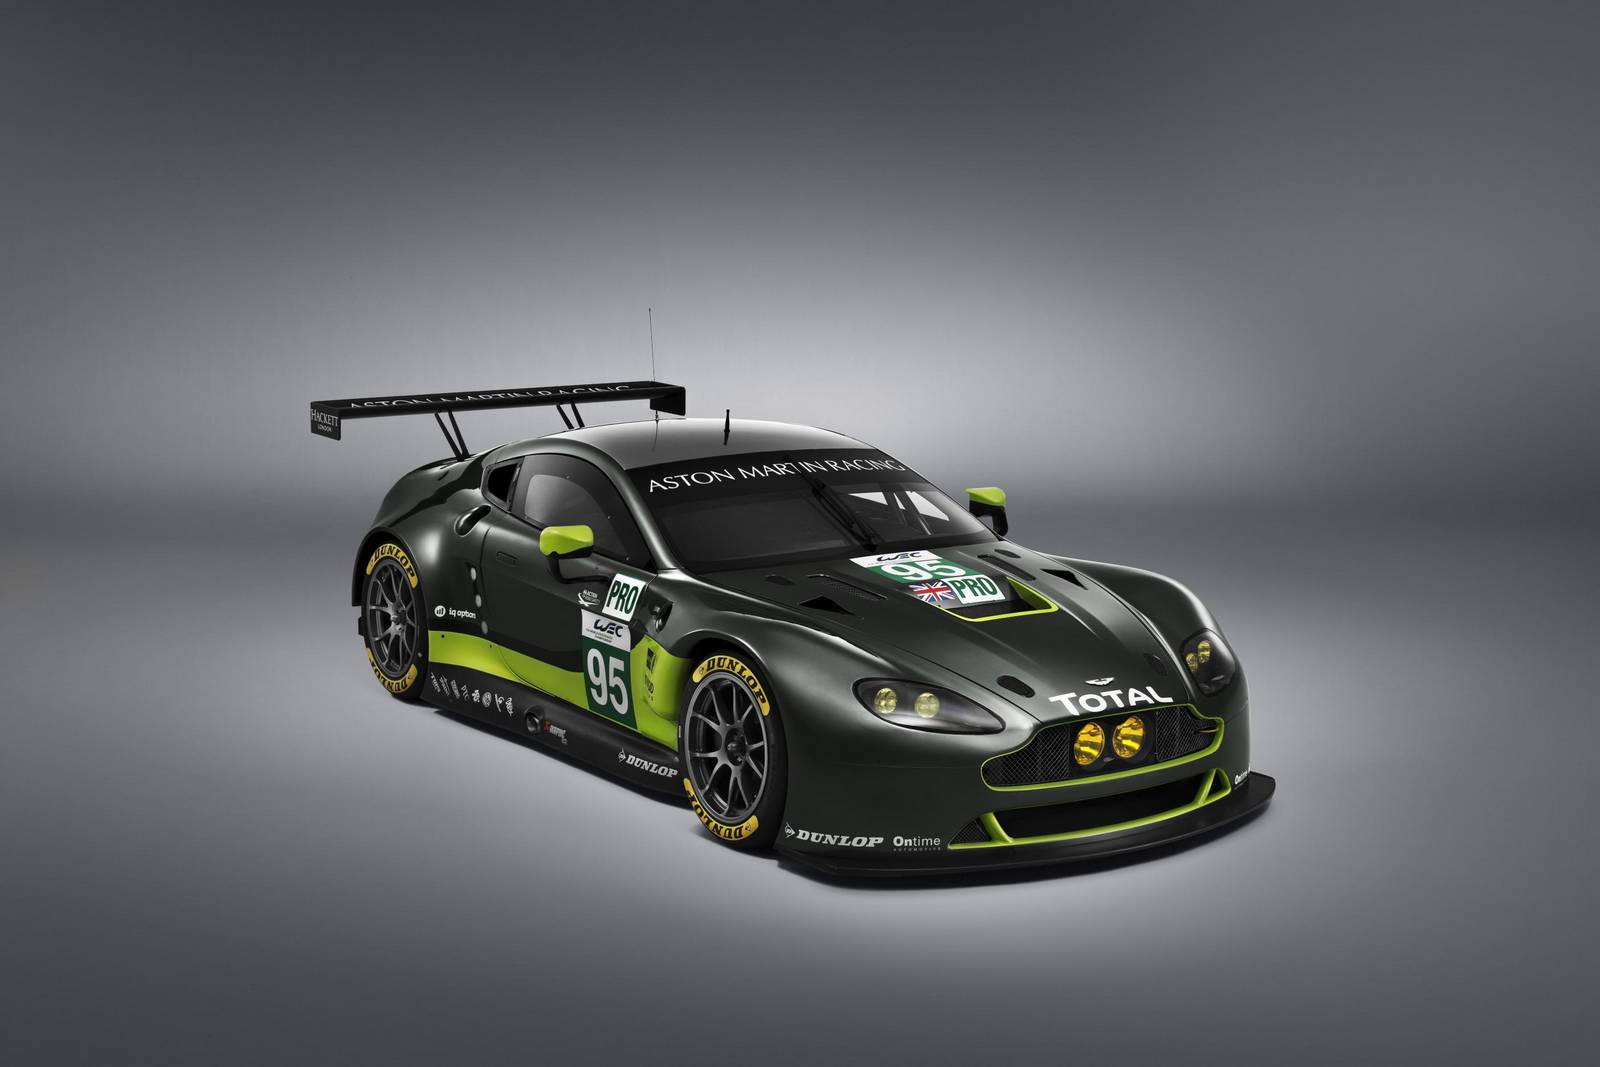 official 2016 aston martin v8 vantage gte and v12 vantage gt3 gtspirit. Black Bedroom Furniture Sets. Home Design Ideas